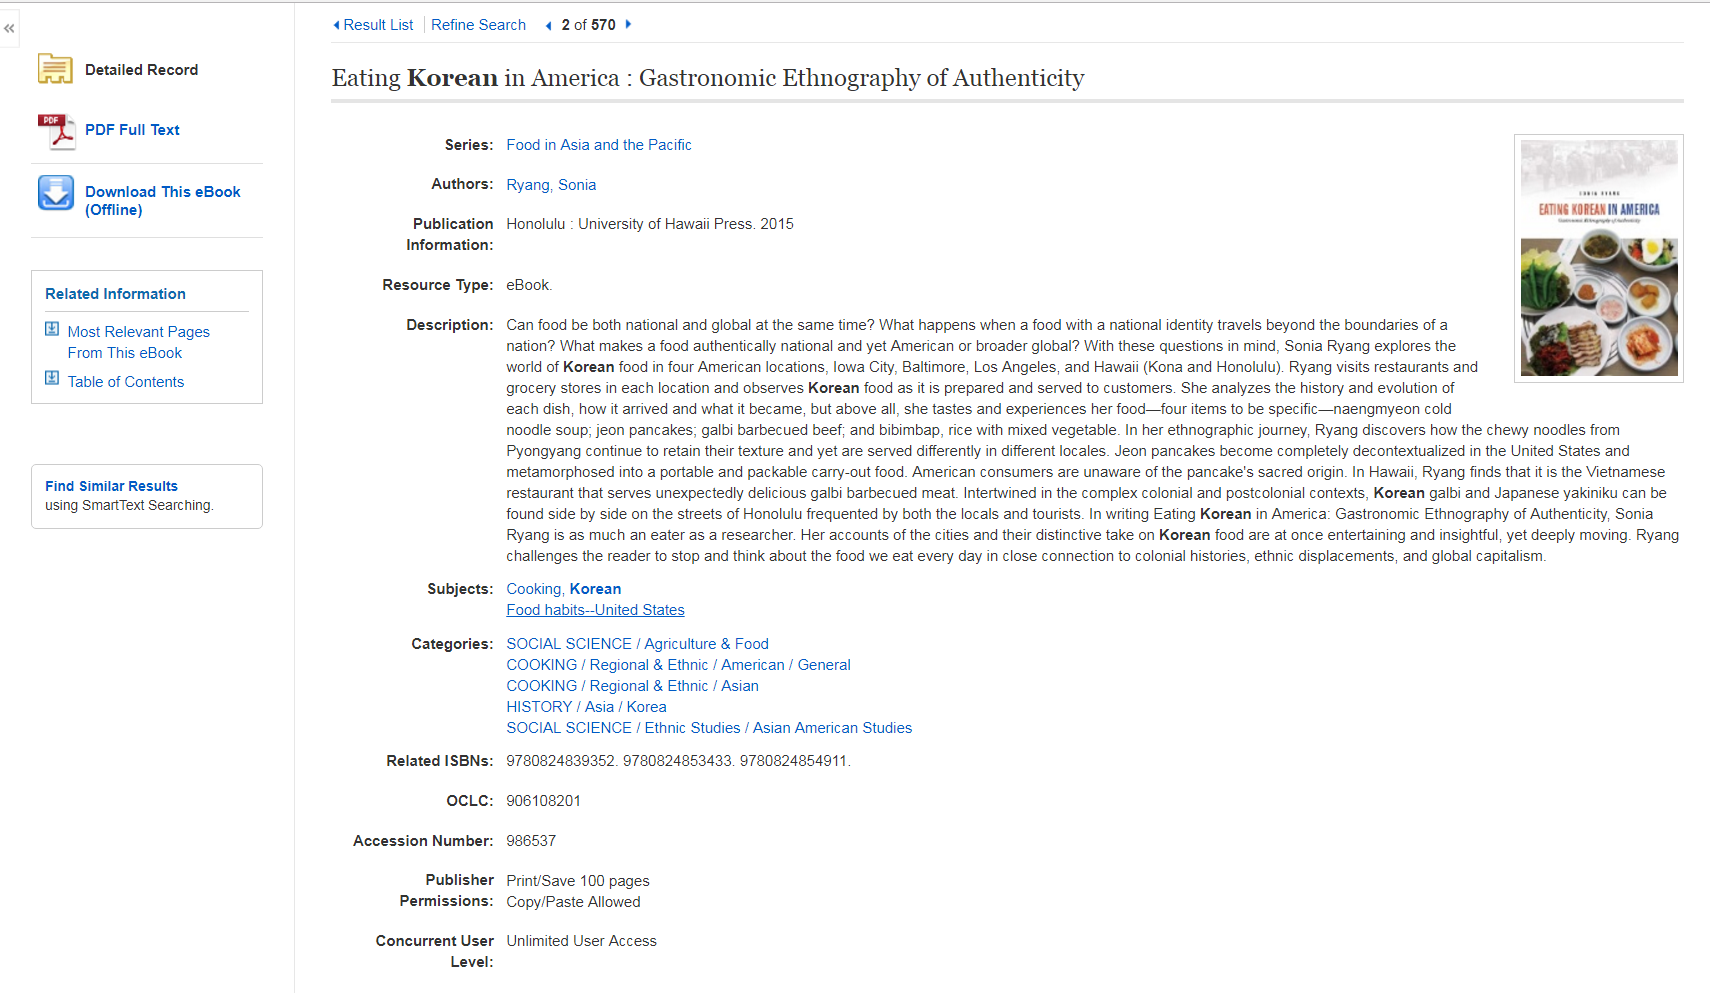 Result for a book in eBooks on EBSCOhost, Eating Korean in America. Towards the bottom of the image, you can see Publisher Permissions of Print/Save 100 pages and Copy/Paste Allowed  and Concurrent User Level of Unlimited.